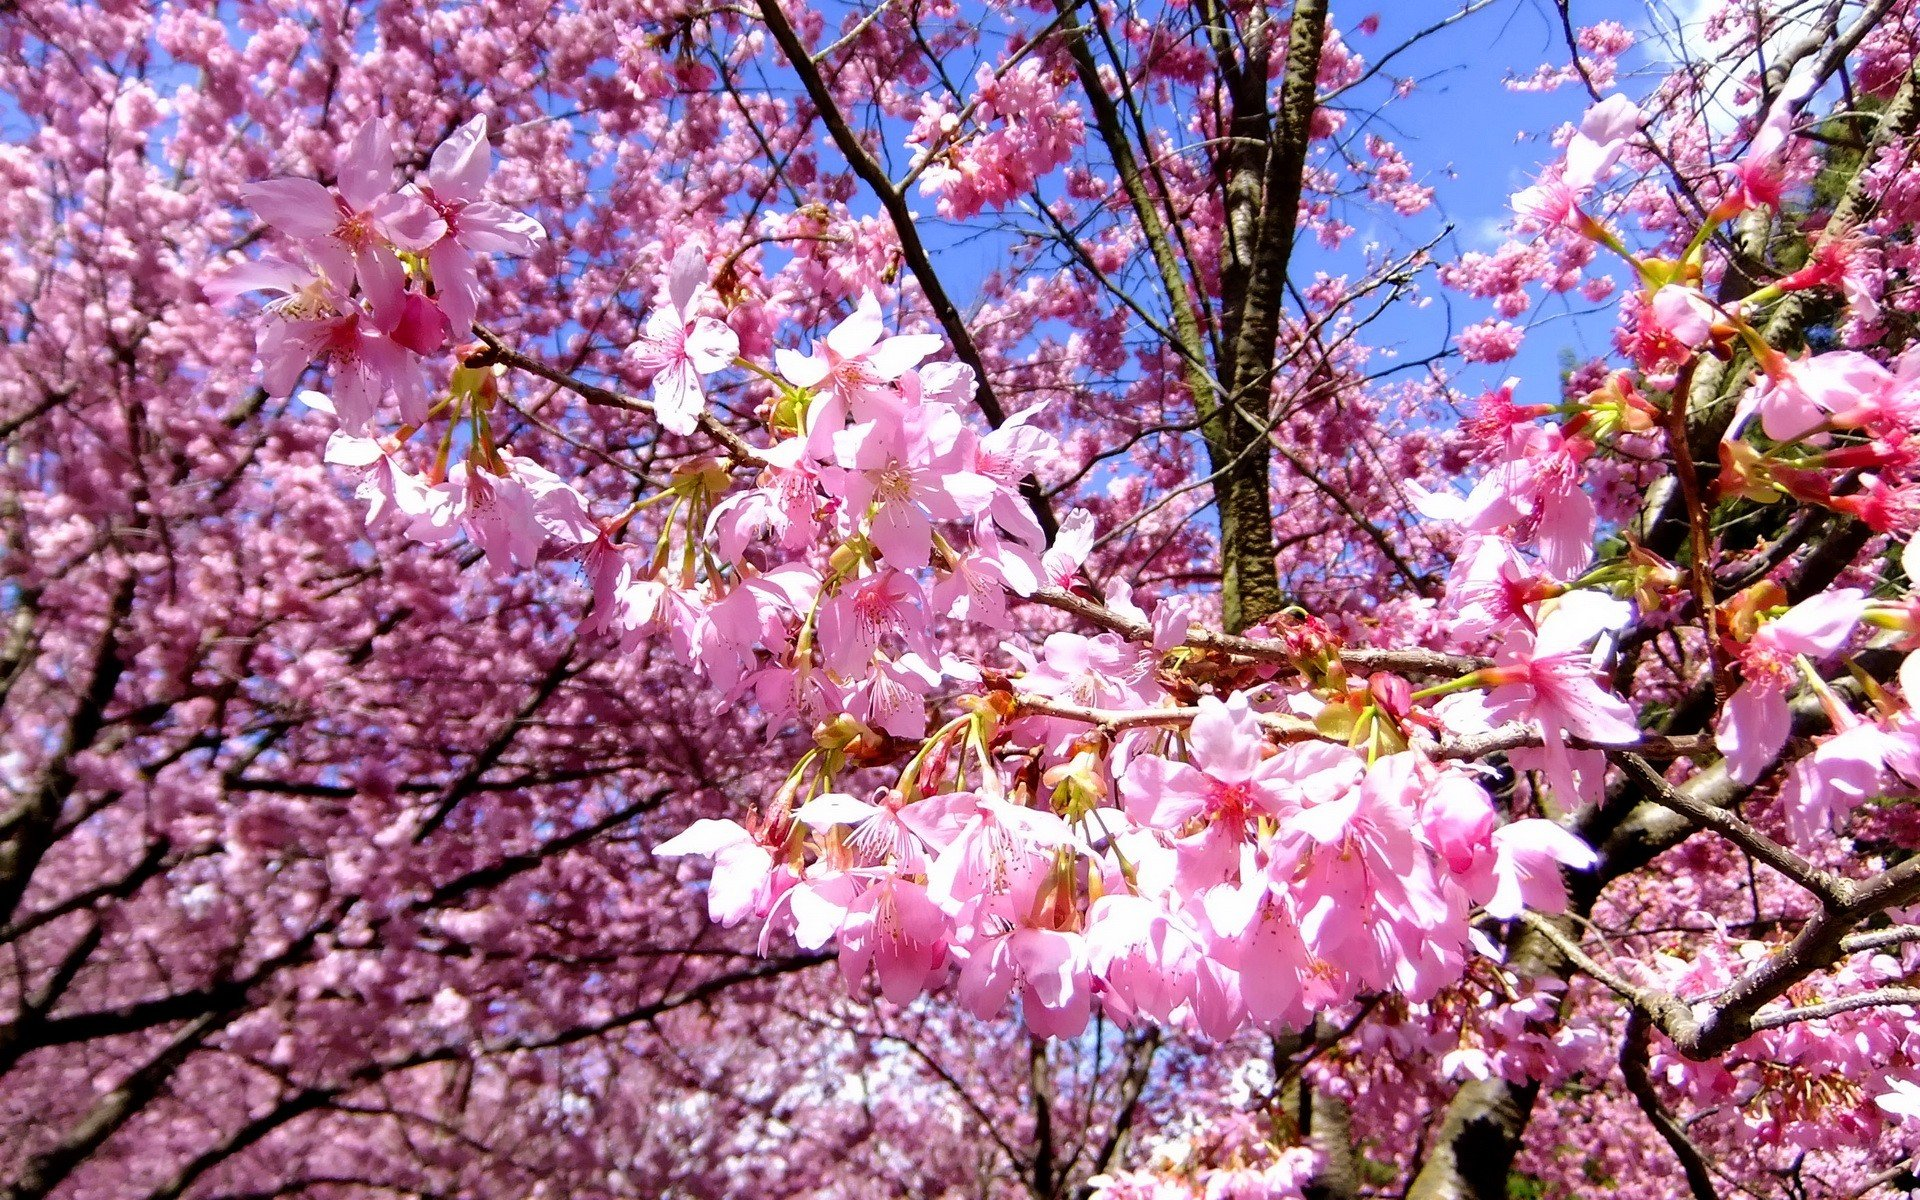 Nature cherry blossoms flowers spring branches pink flowers